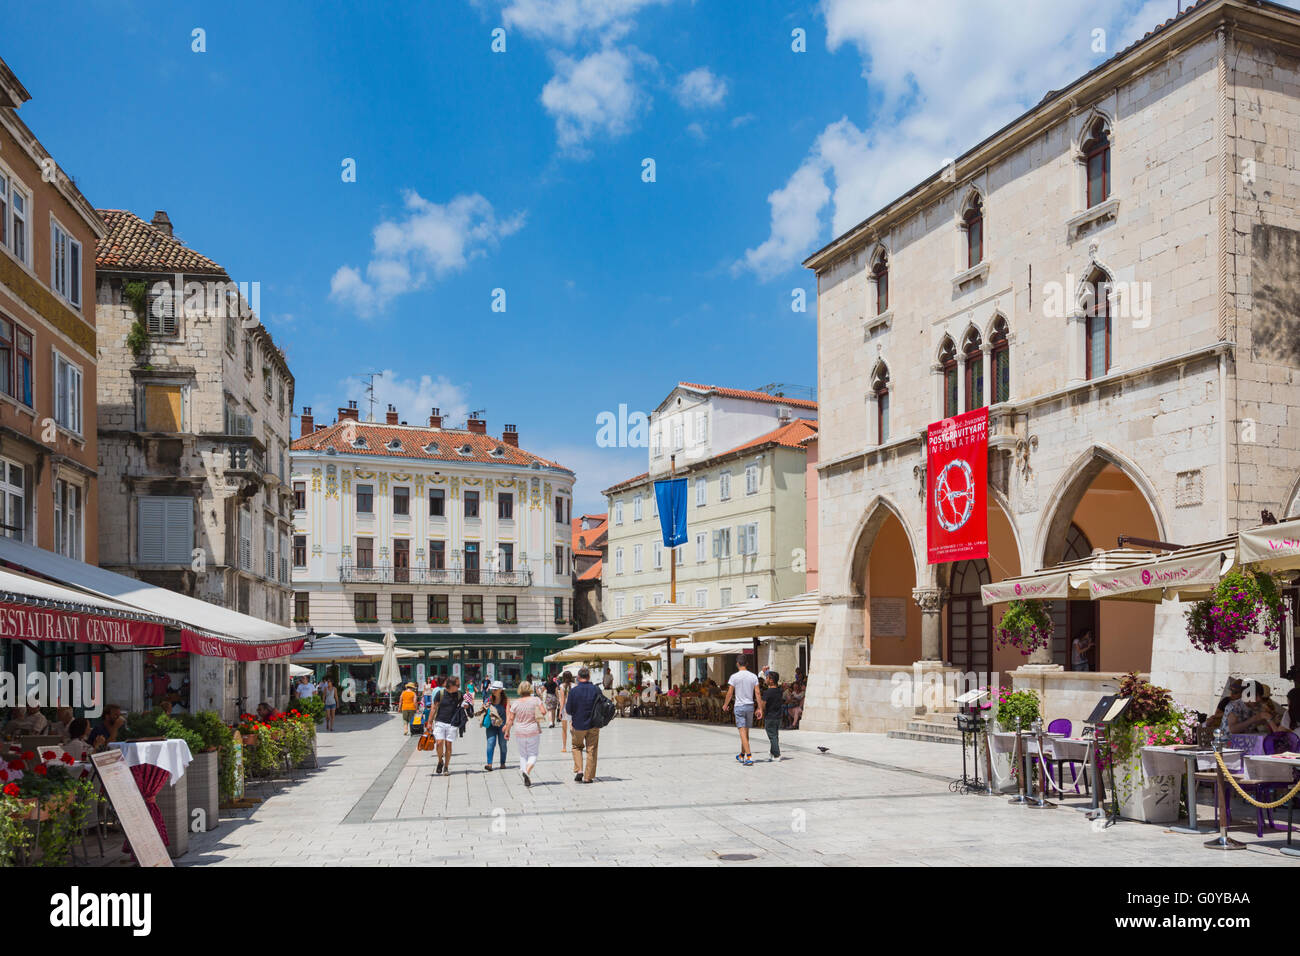 Split, Dalmatian Coast, Croatia.  People's Square.  The red banner hangs from the 15th century Renaissance Town - Stock Image